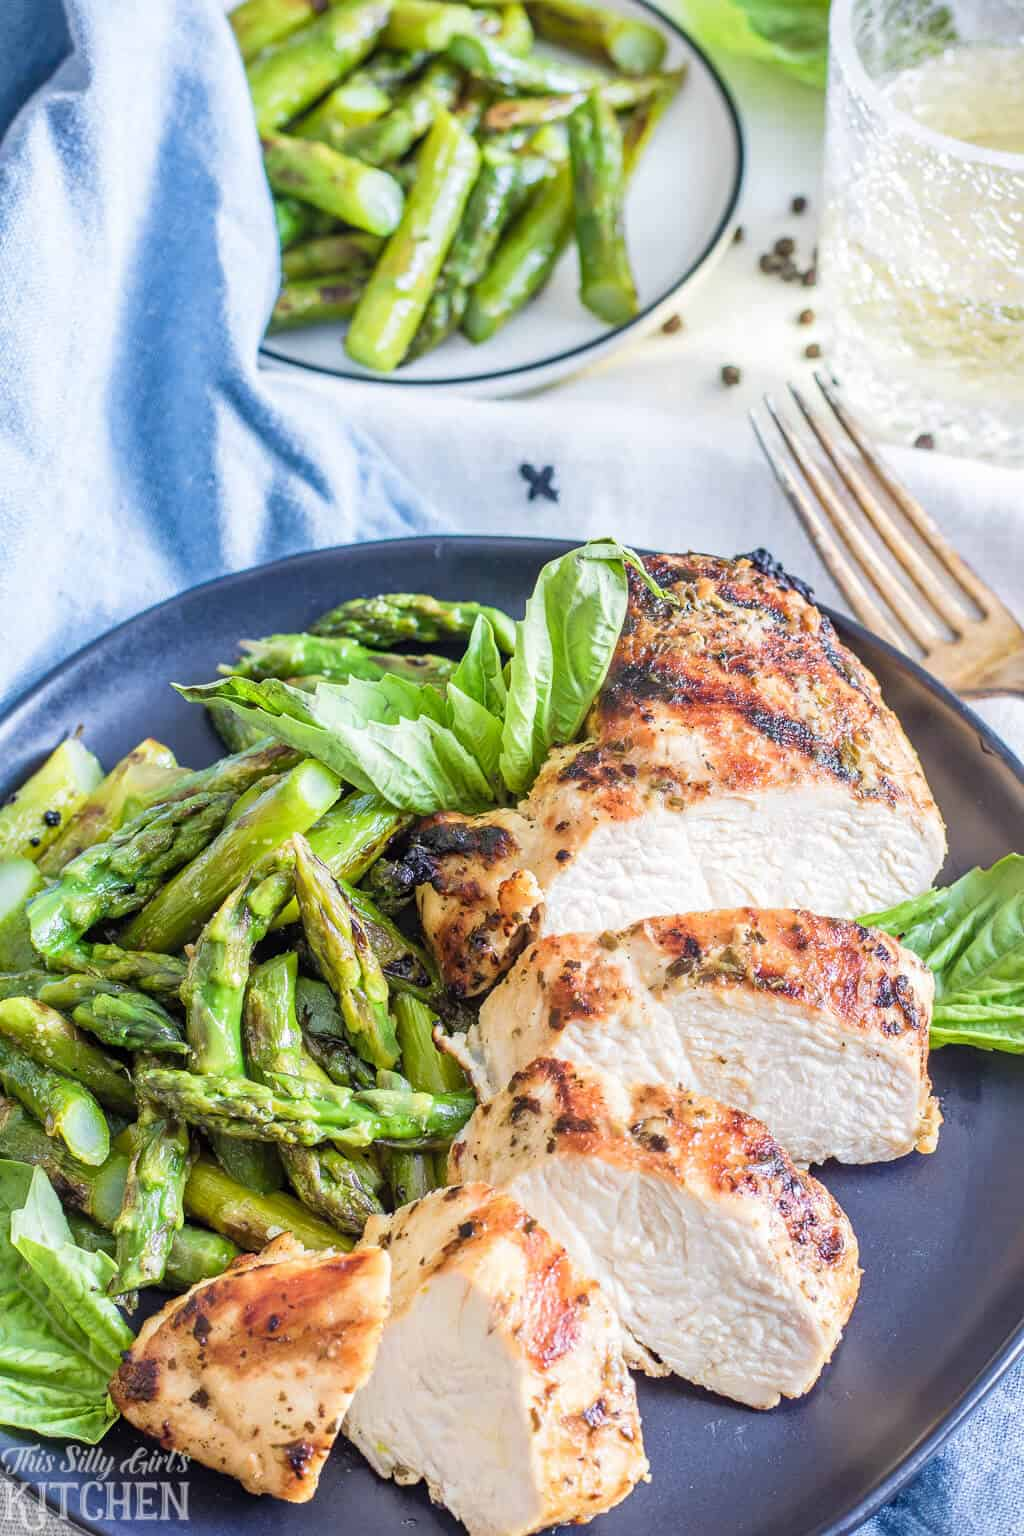 Pesto Chicken Marinade on cut up grilled chicken on plate with asparagus